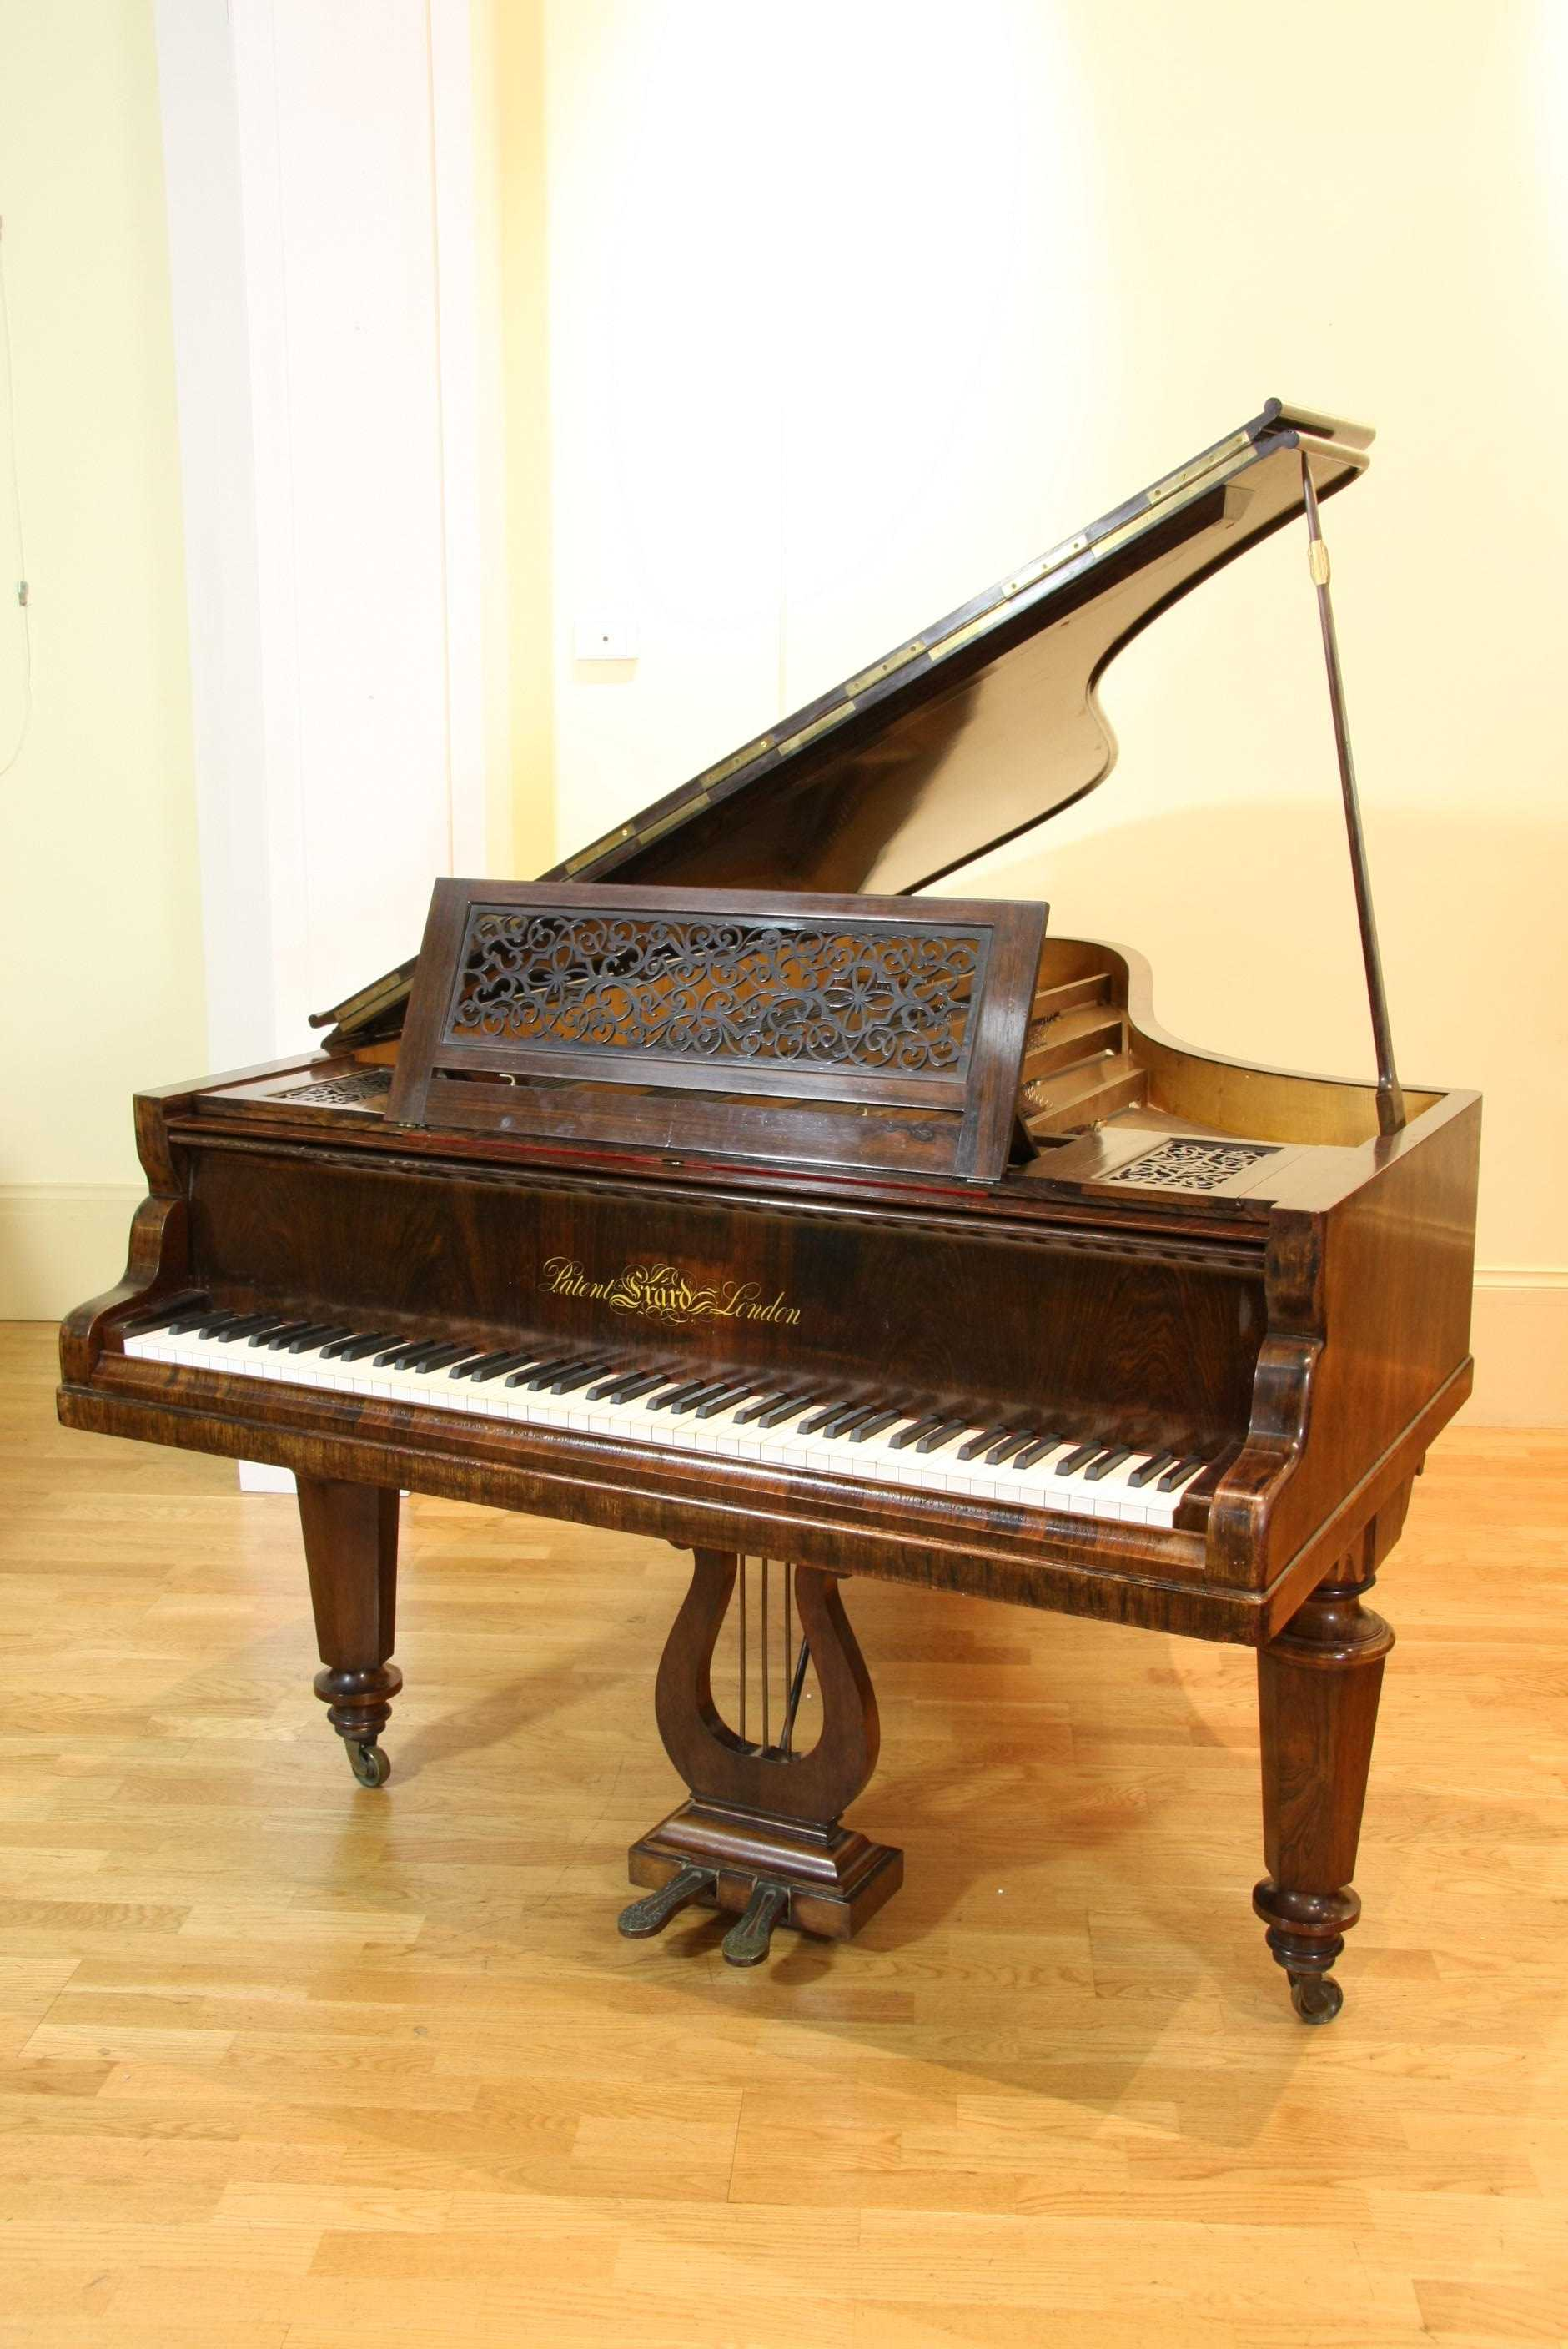 Erard baby grand piano with a rosewood case and a fretwork ...